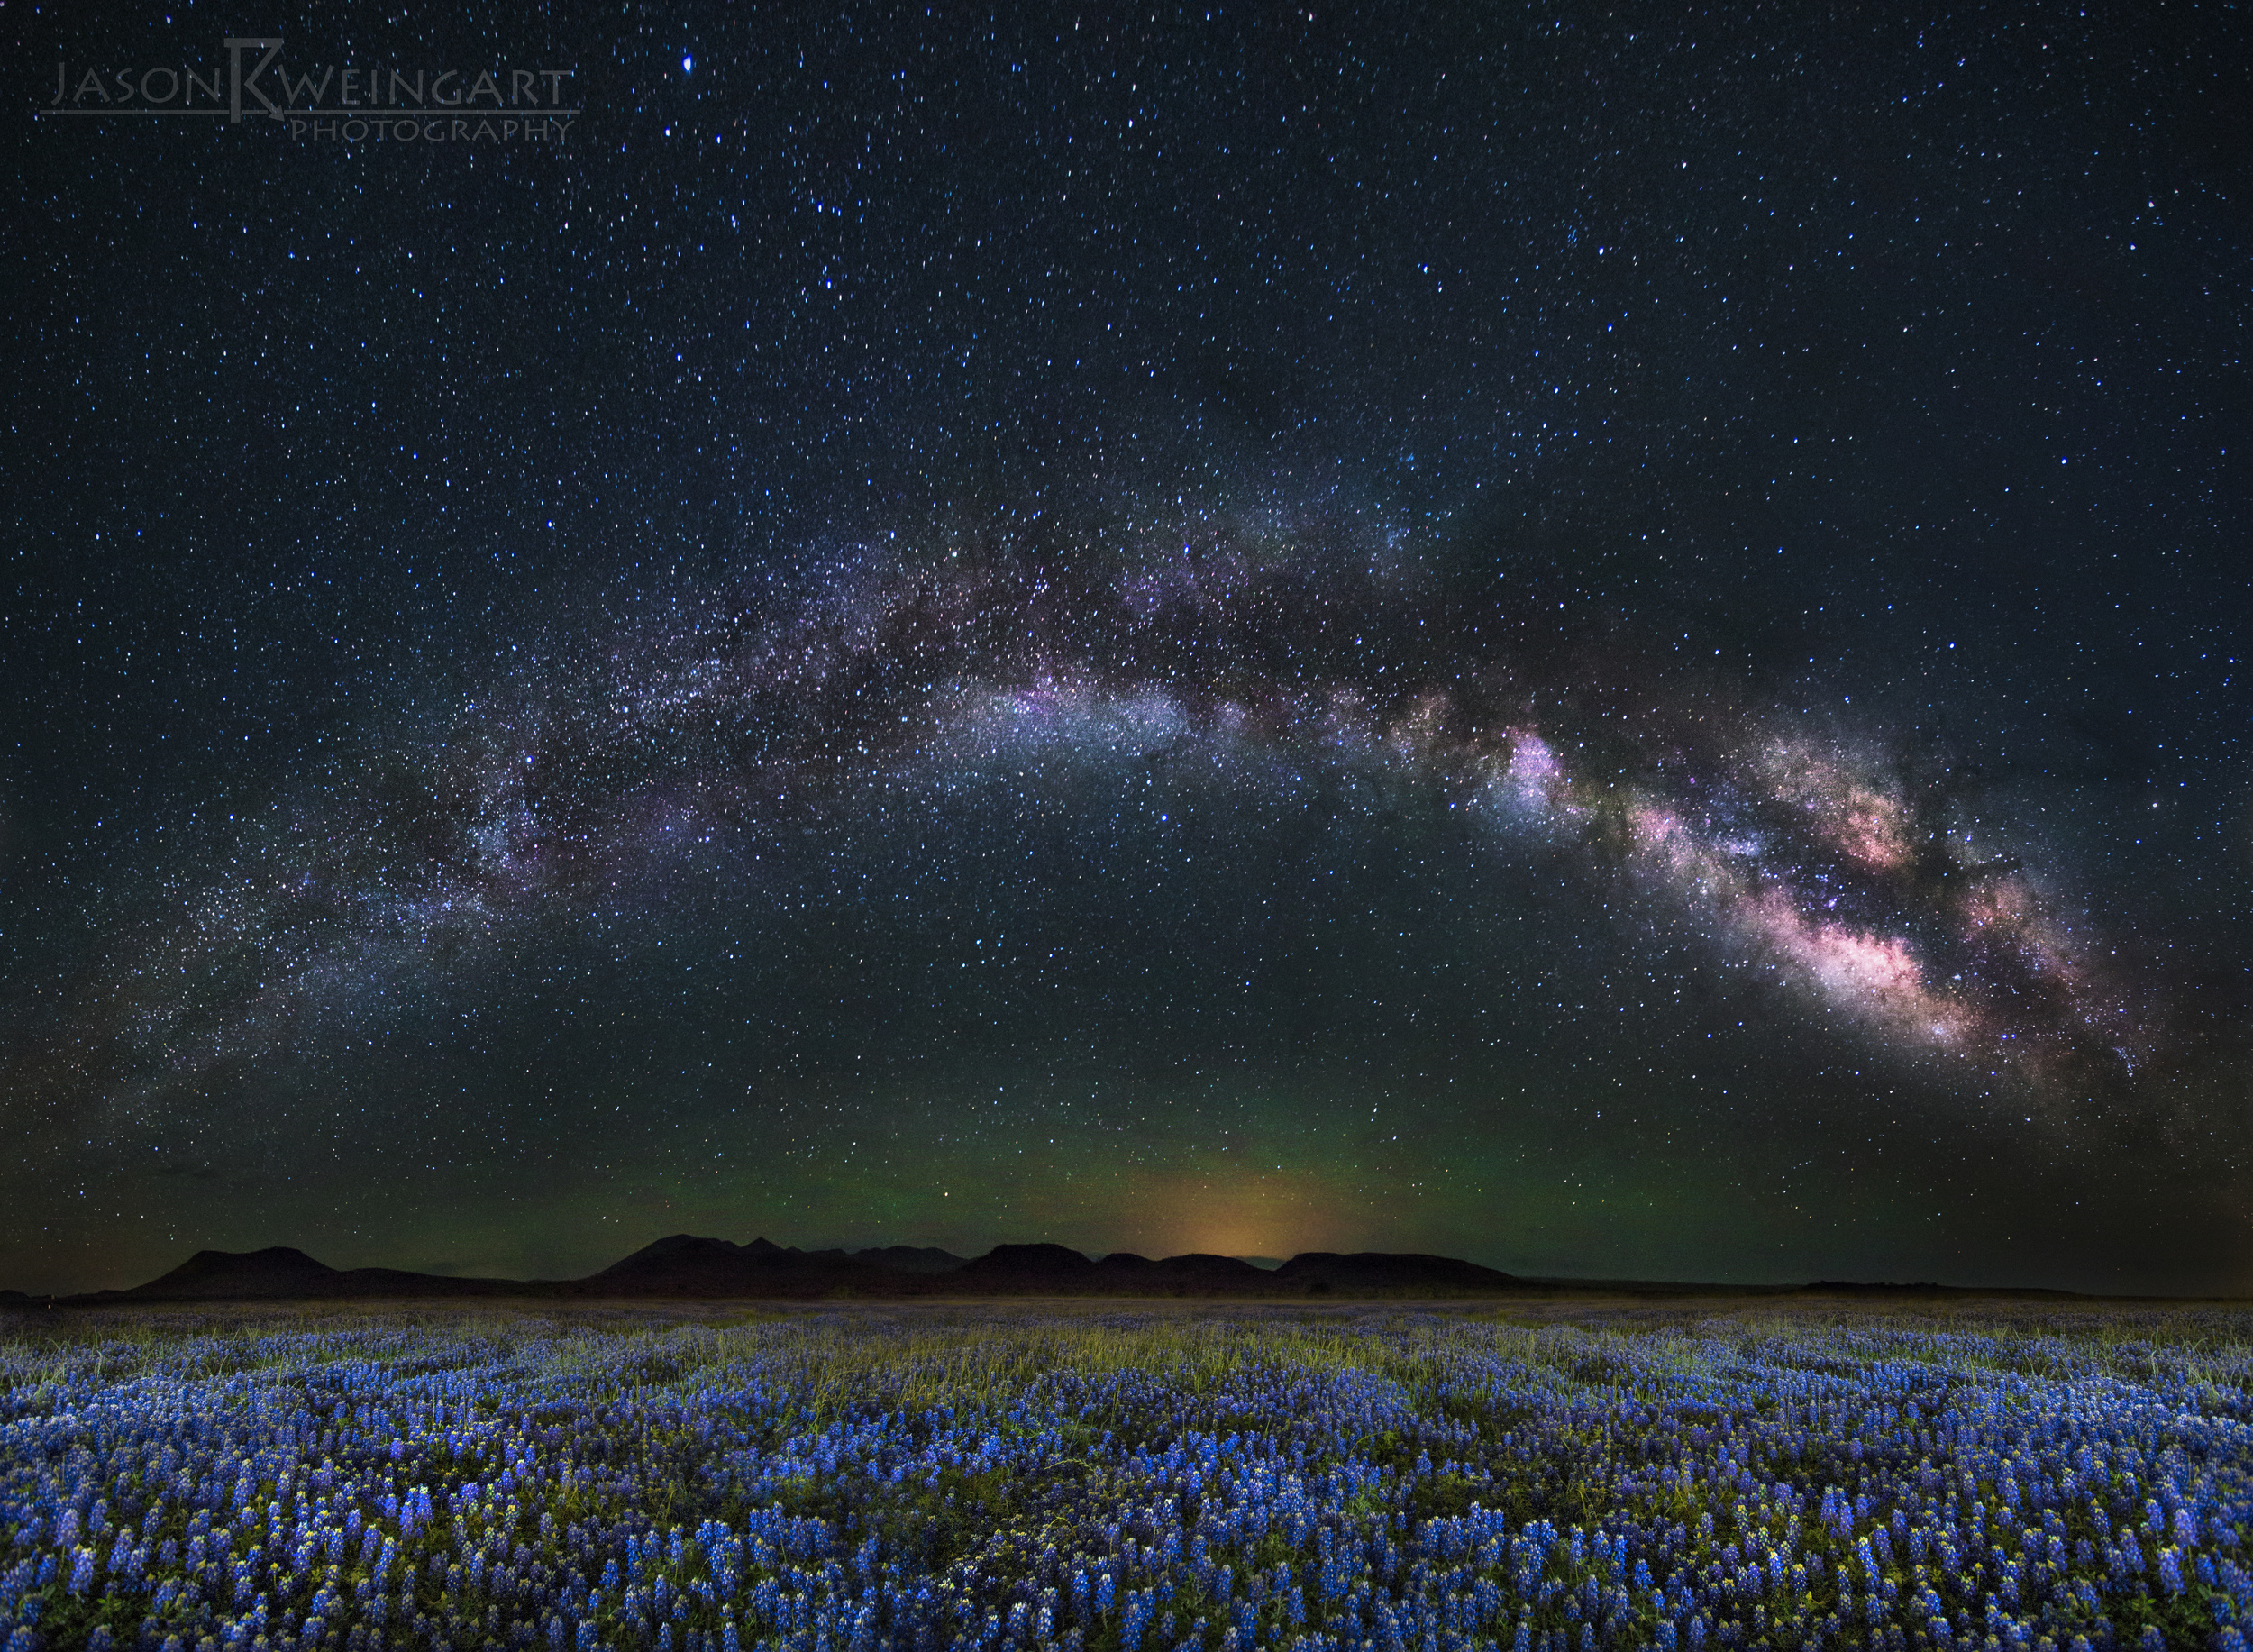 Bluebonnet Milky Way